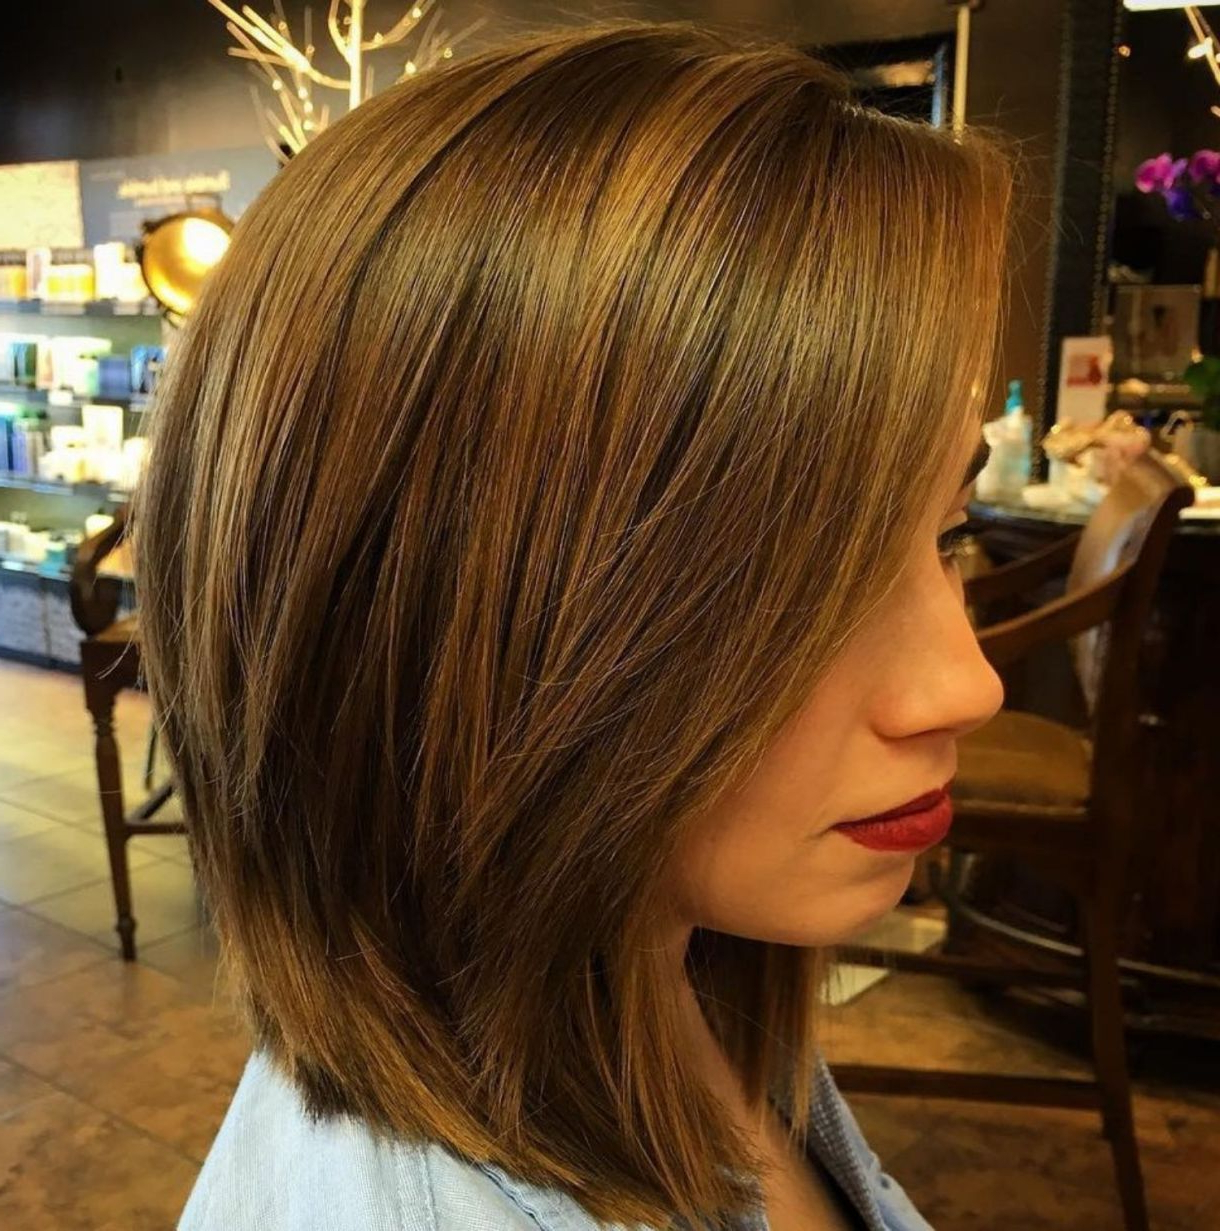 Most Recent Bob Haircuts With Symmetrical Swoopy Layers Inside 60 Layered Bob Styles: Modern Haircuts With Layers For Any Occasion (Gallery 20 of 20)